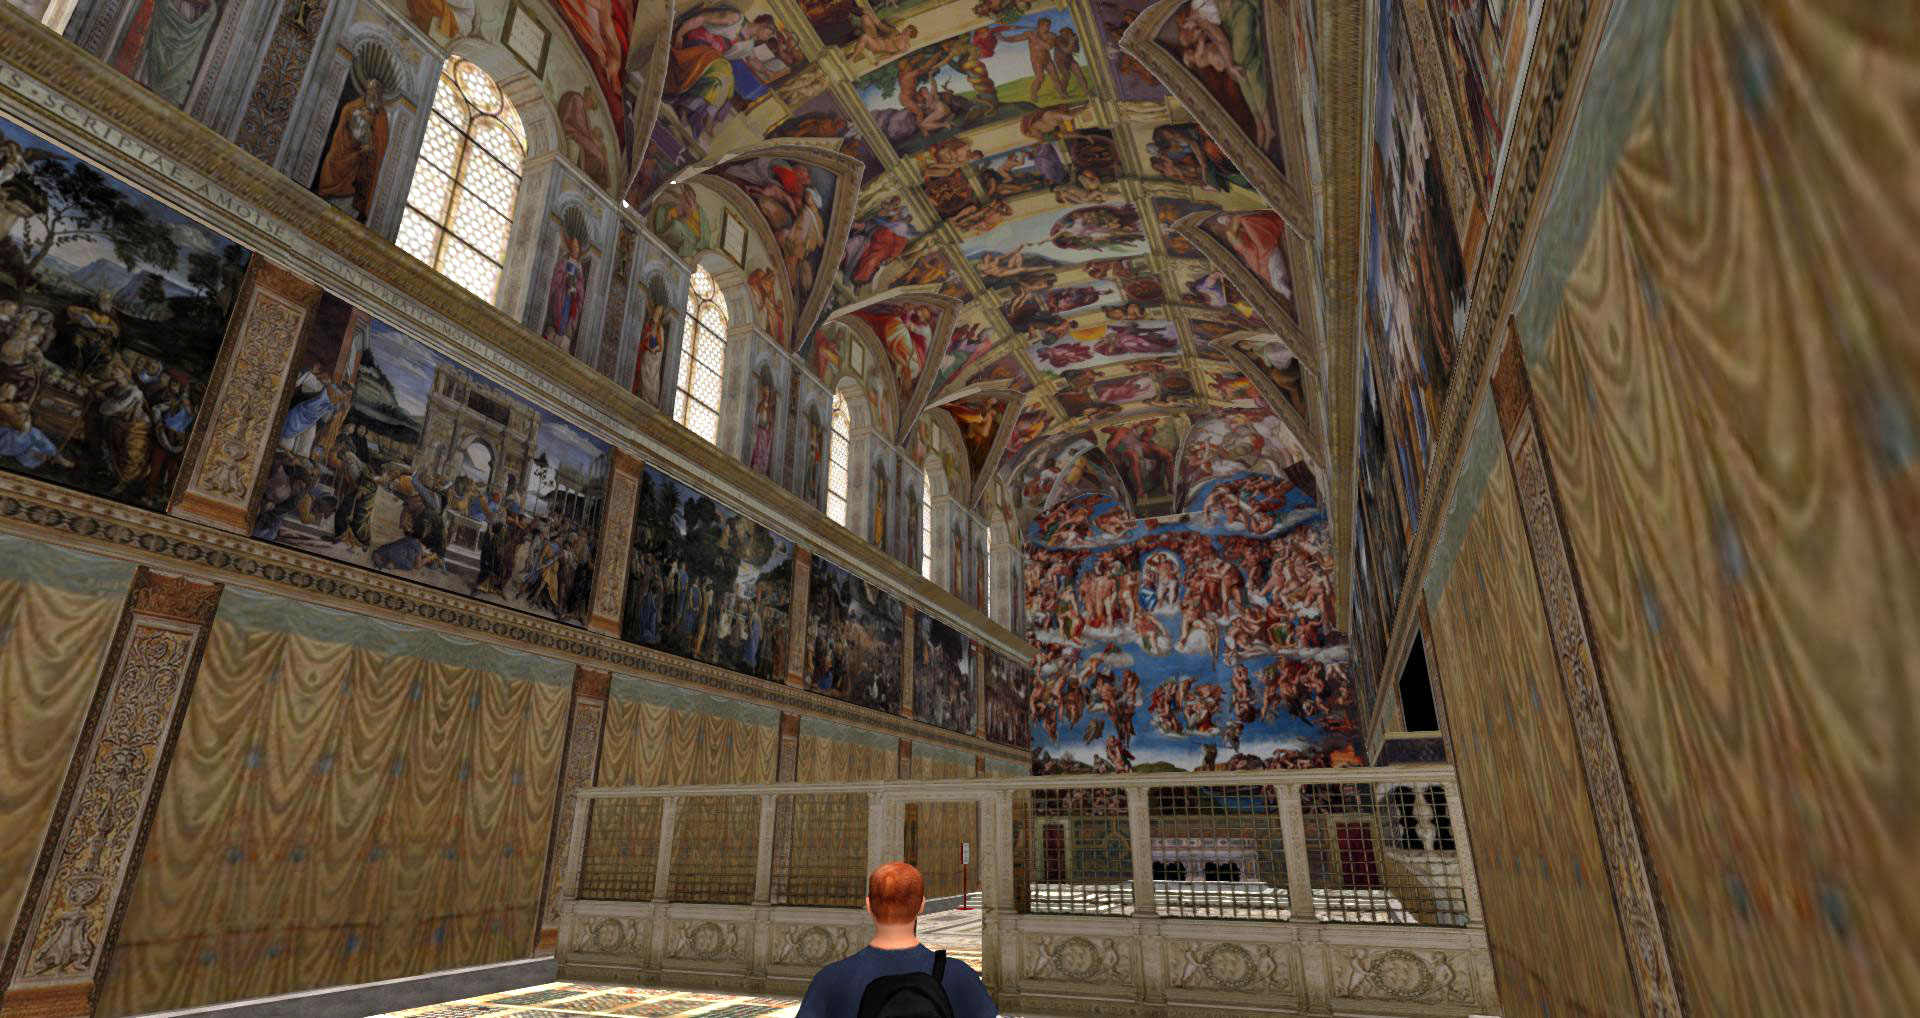 Pics For Gt Sistine Chapel Ceiling High Resolution